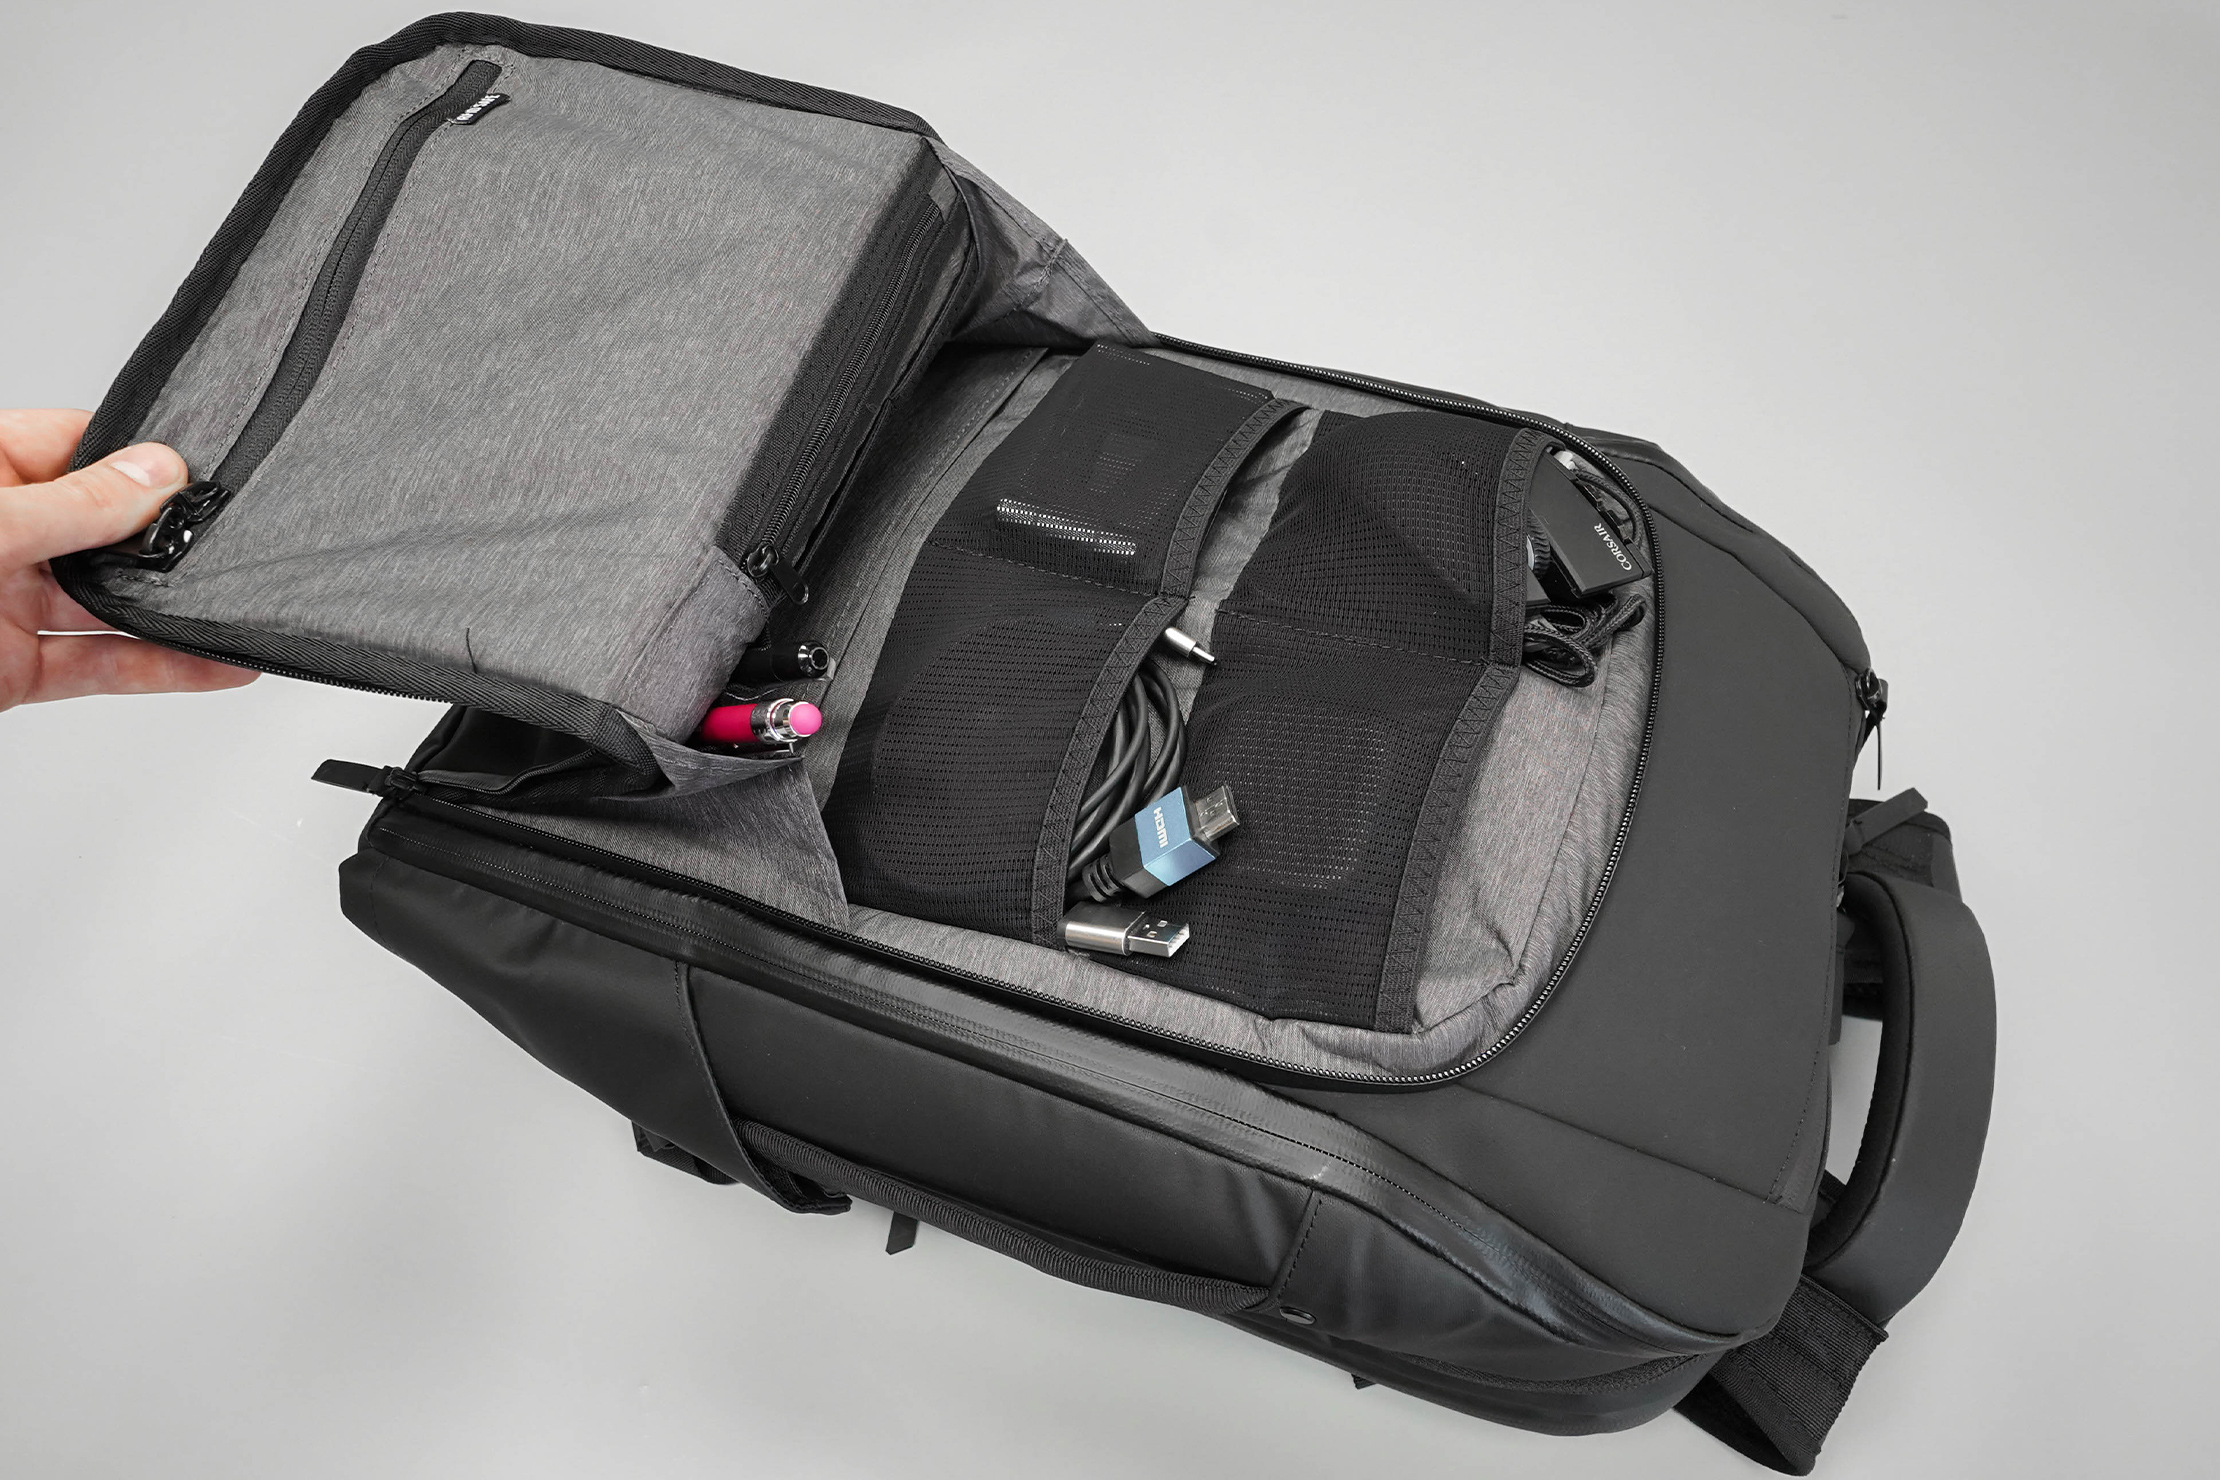 NOMATIC Travel Pack Front Pocket Organization